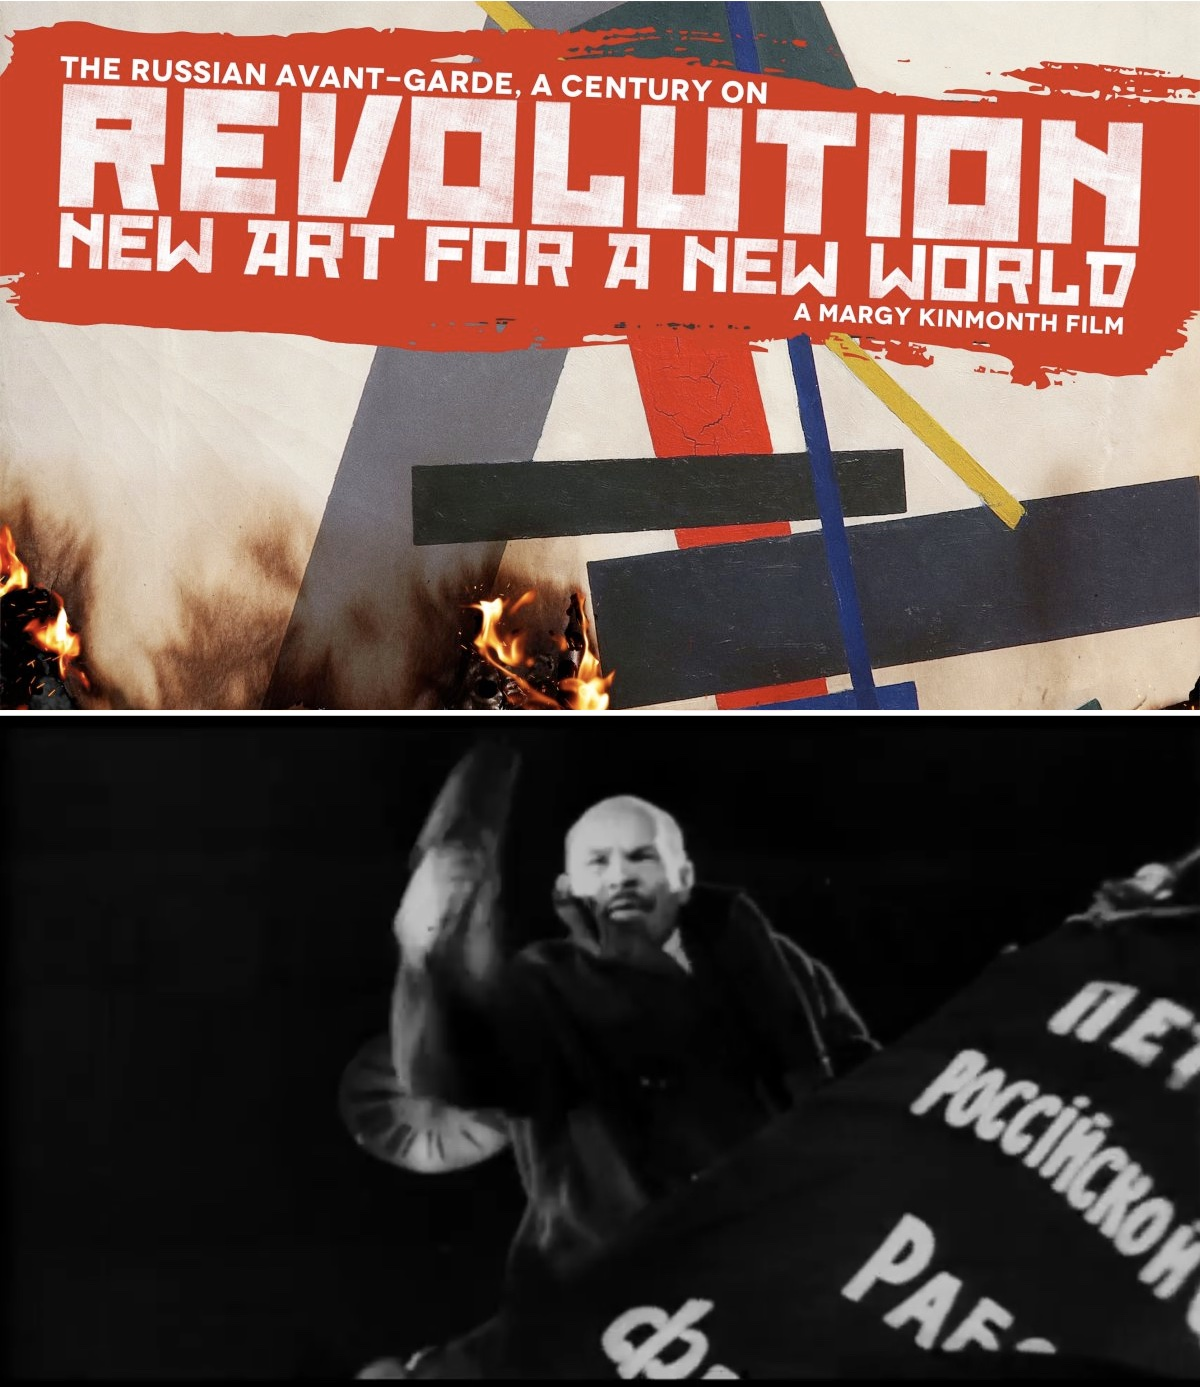 Revolution-FoxtrotFilms.jpg